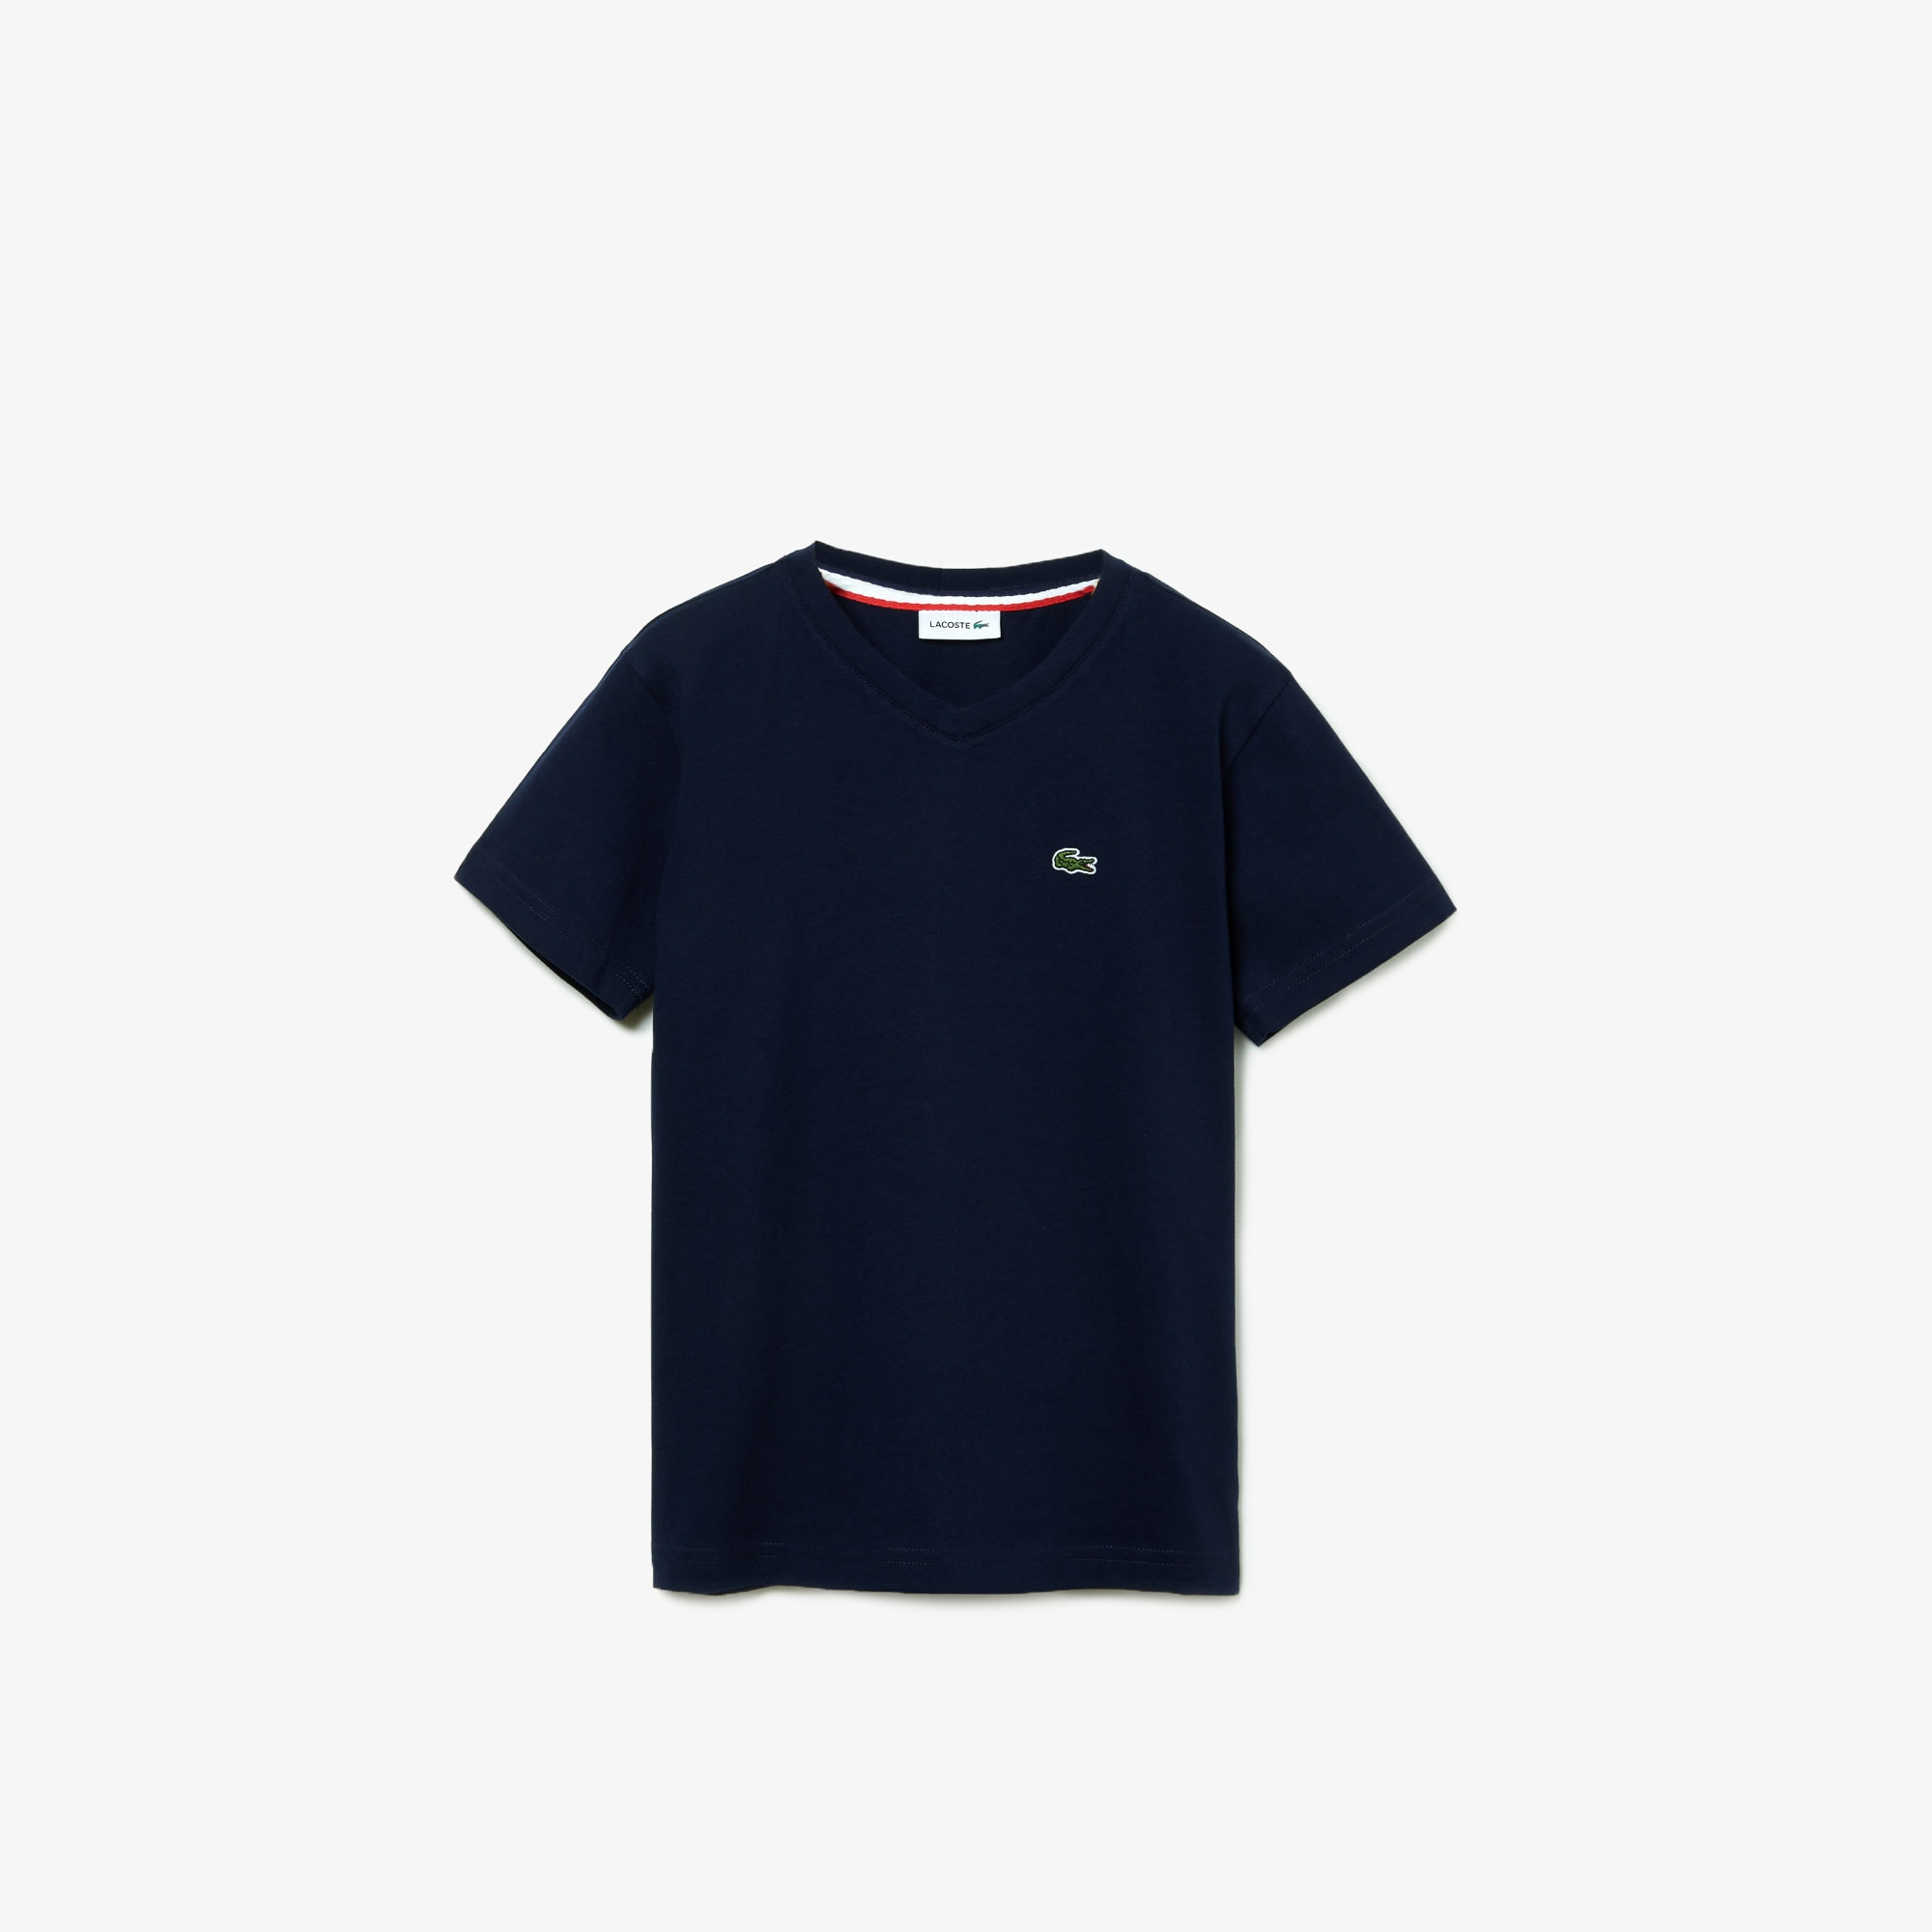 Boys' V-Neck Cotton T-shirt